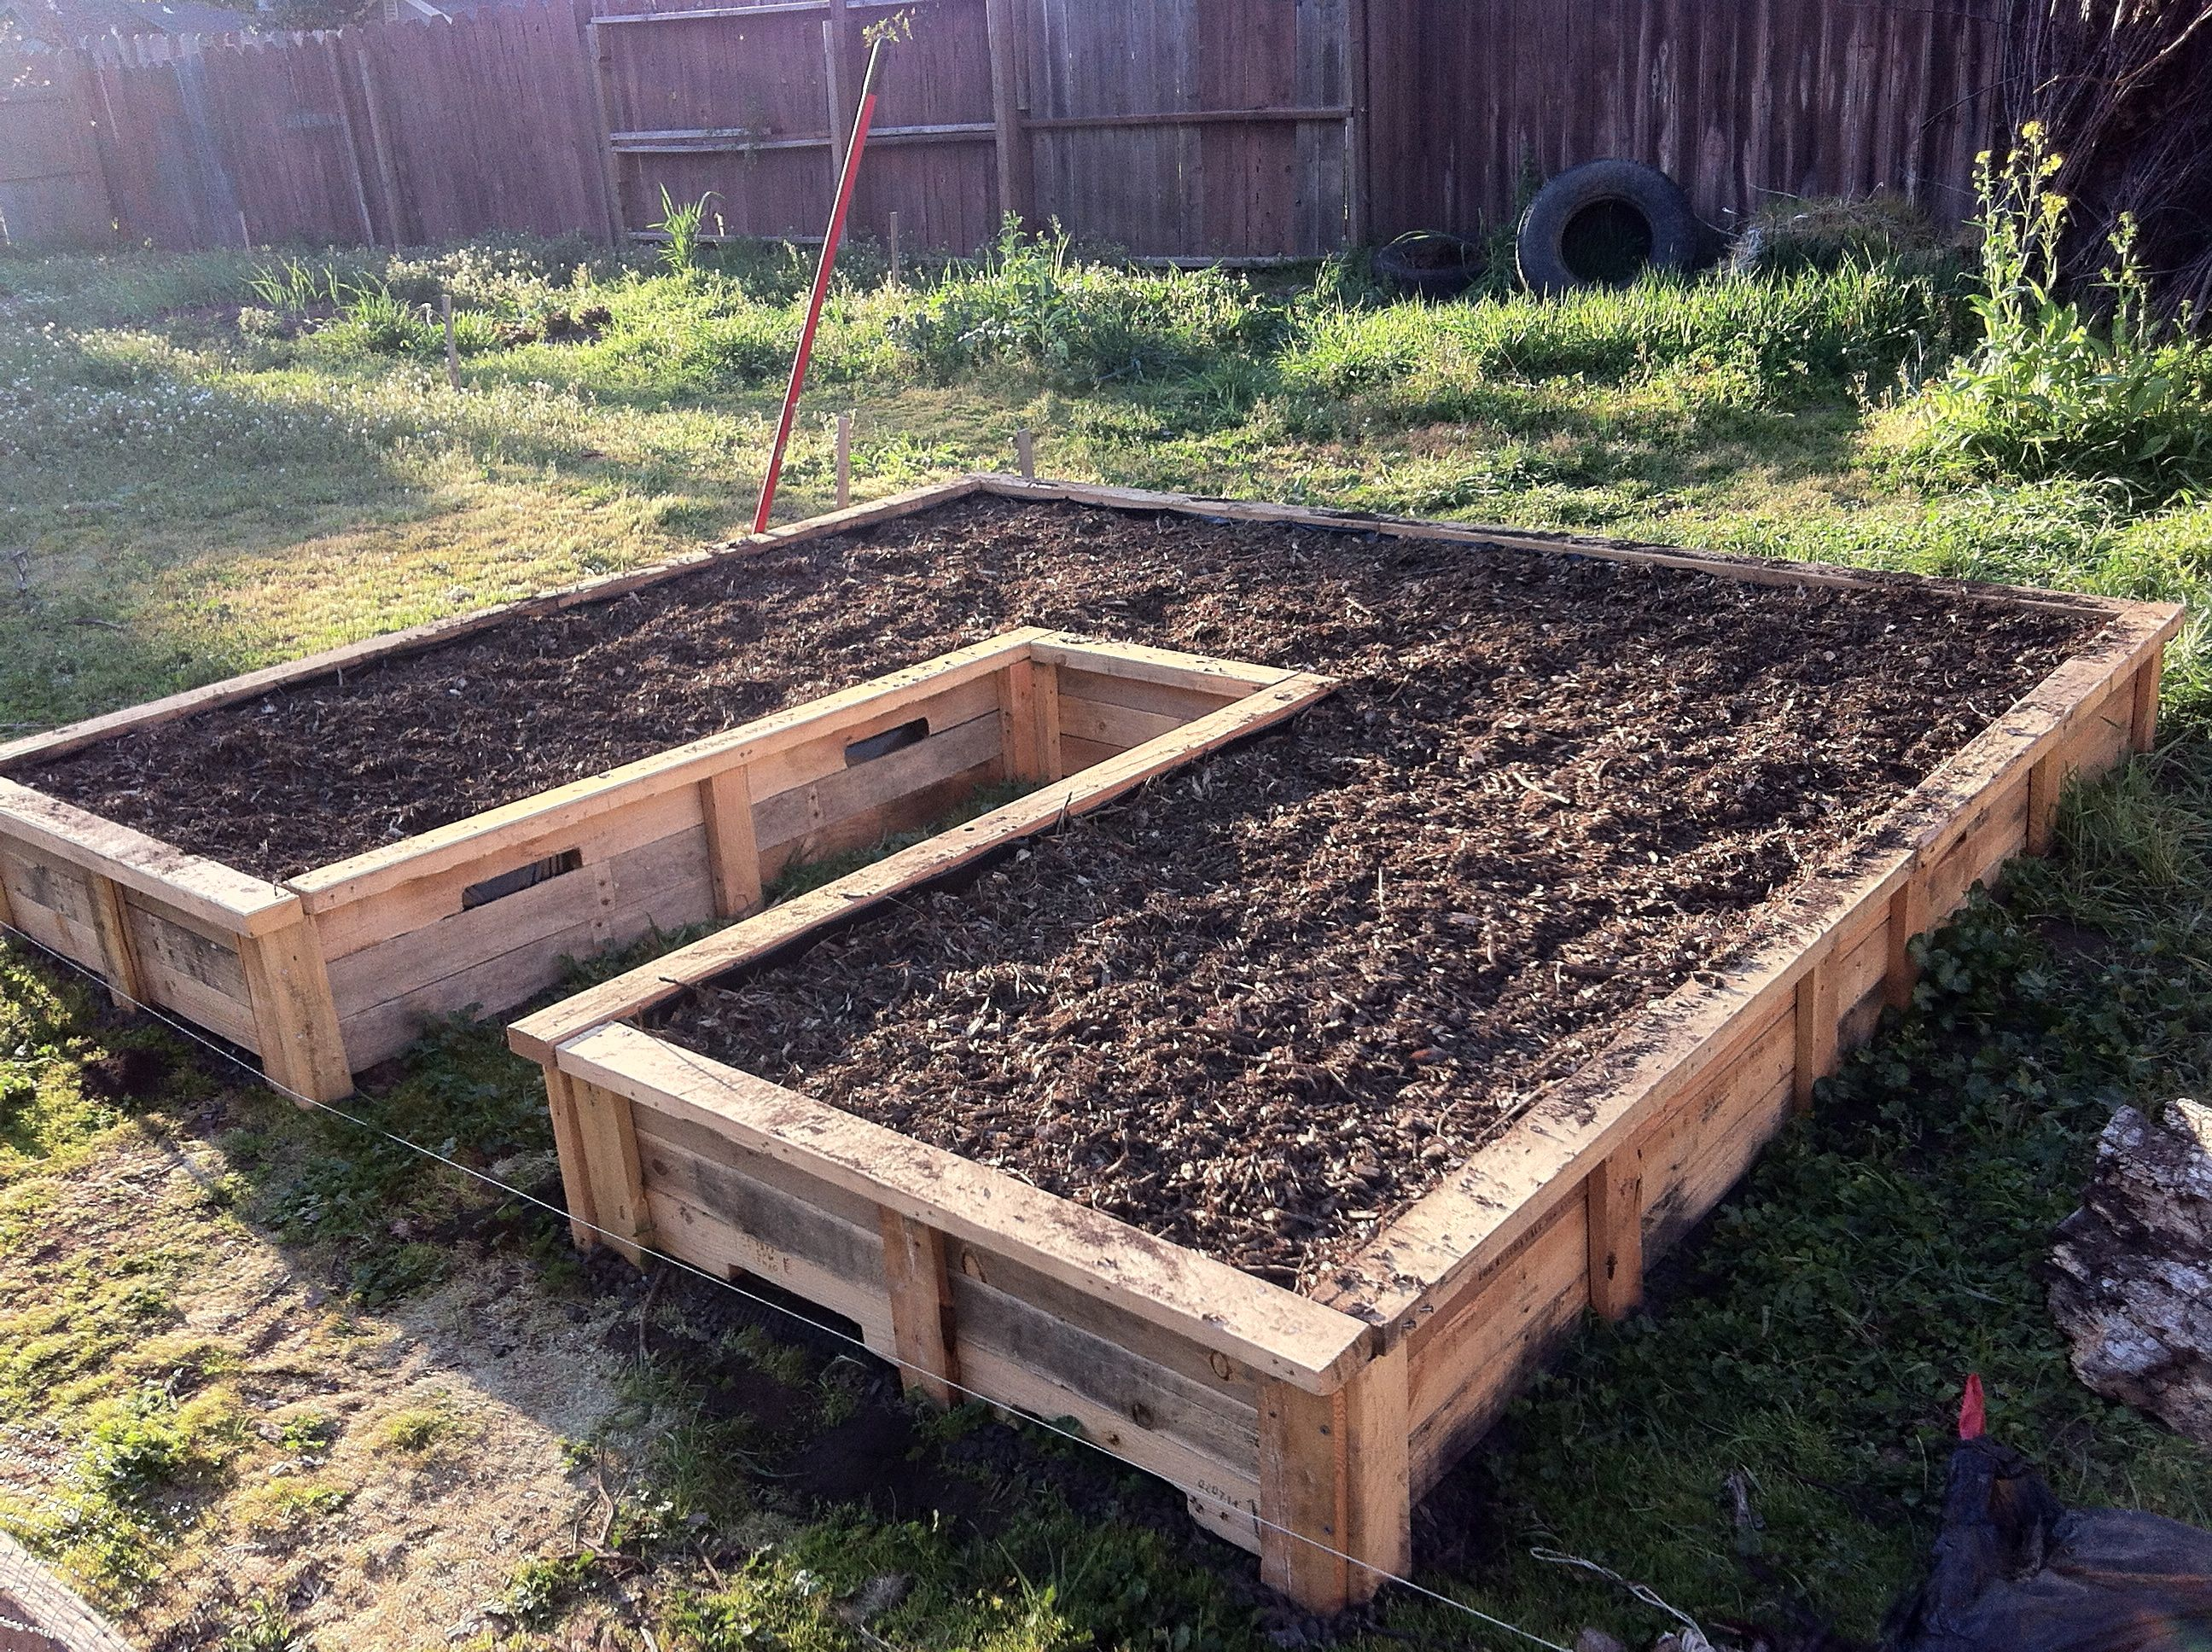 10 x 10 keyhole raised bed made from shipping pallets 25 garden - Garden Ideas Using Pallets